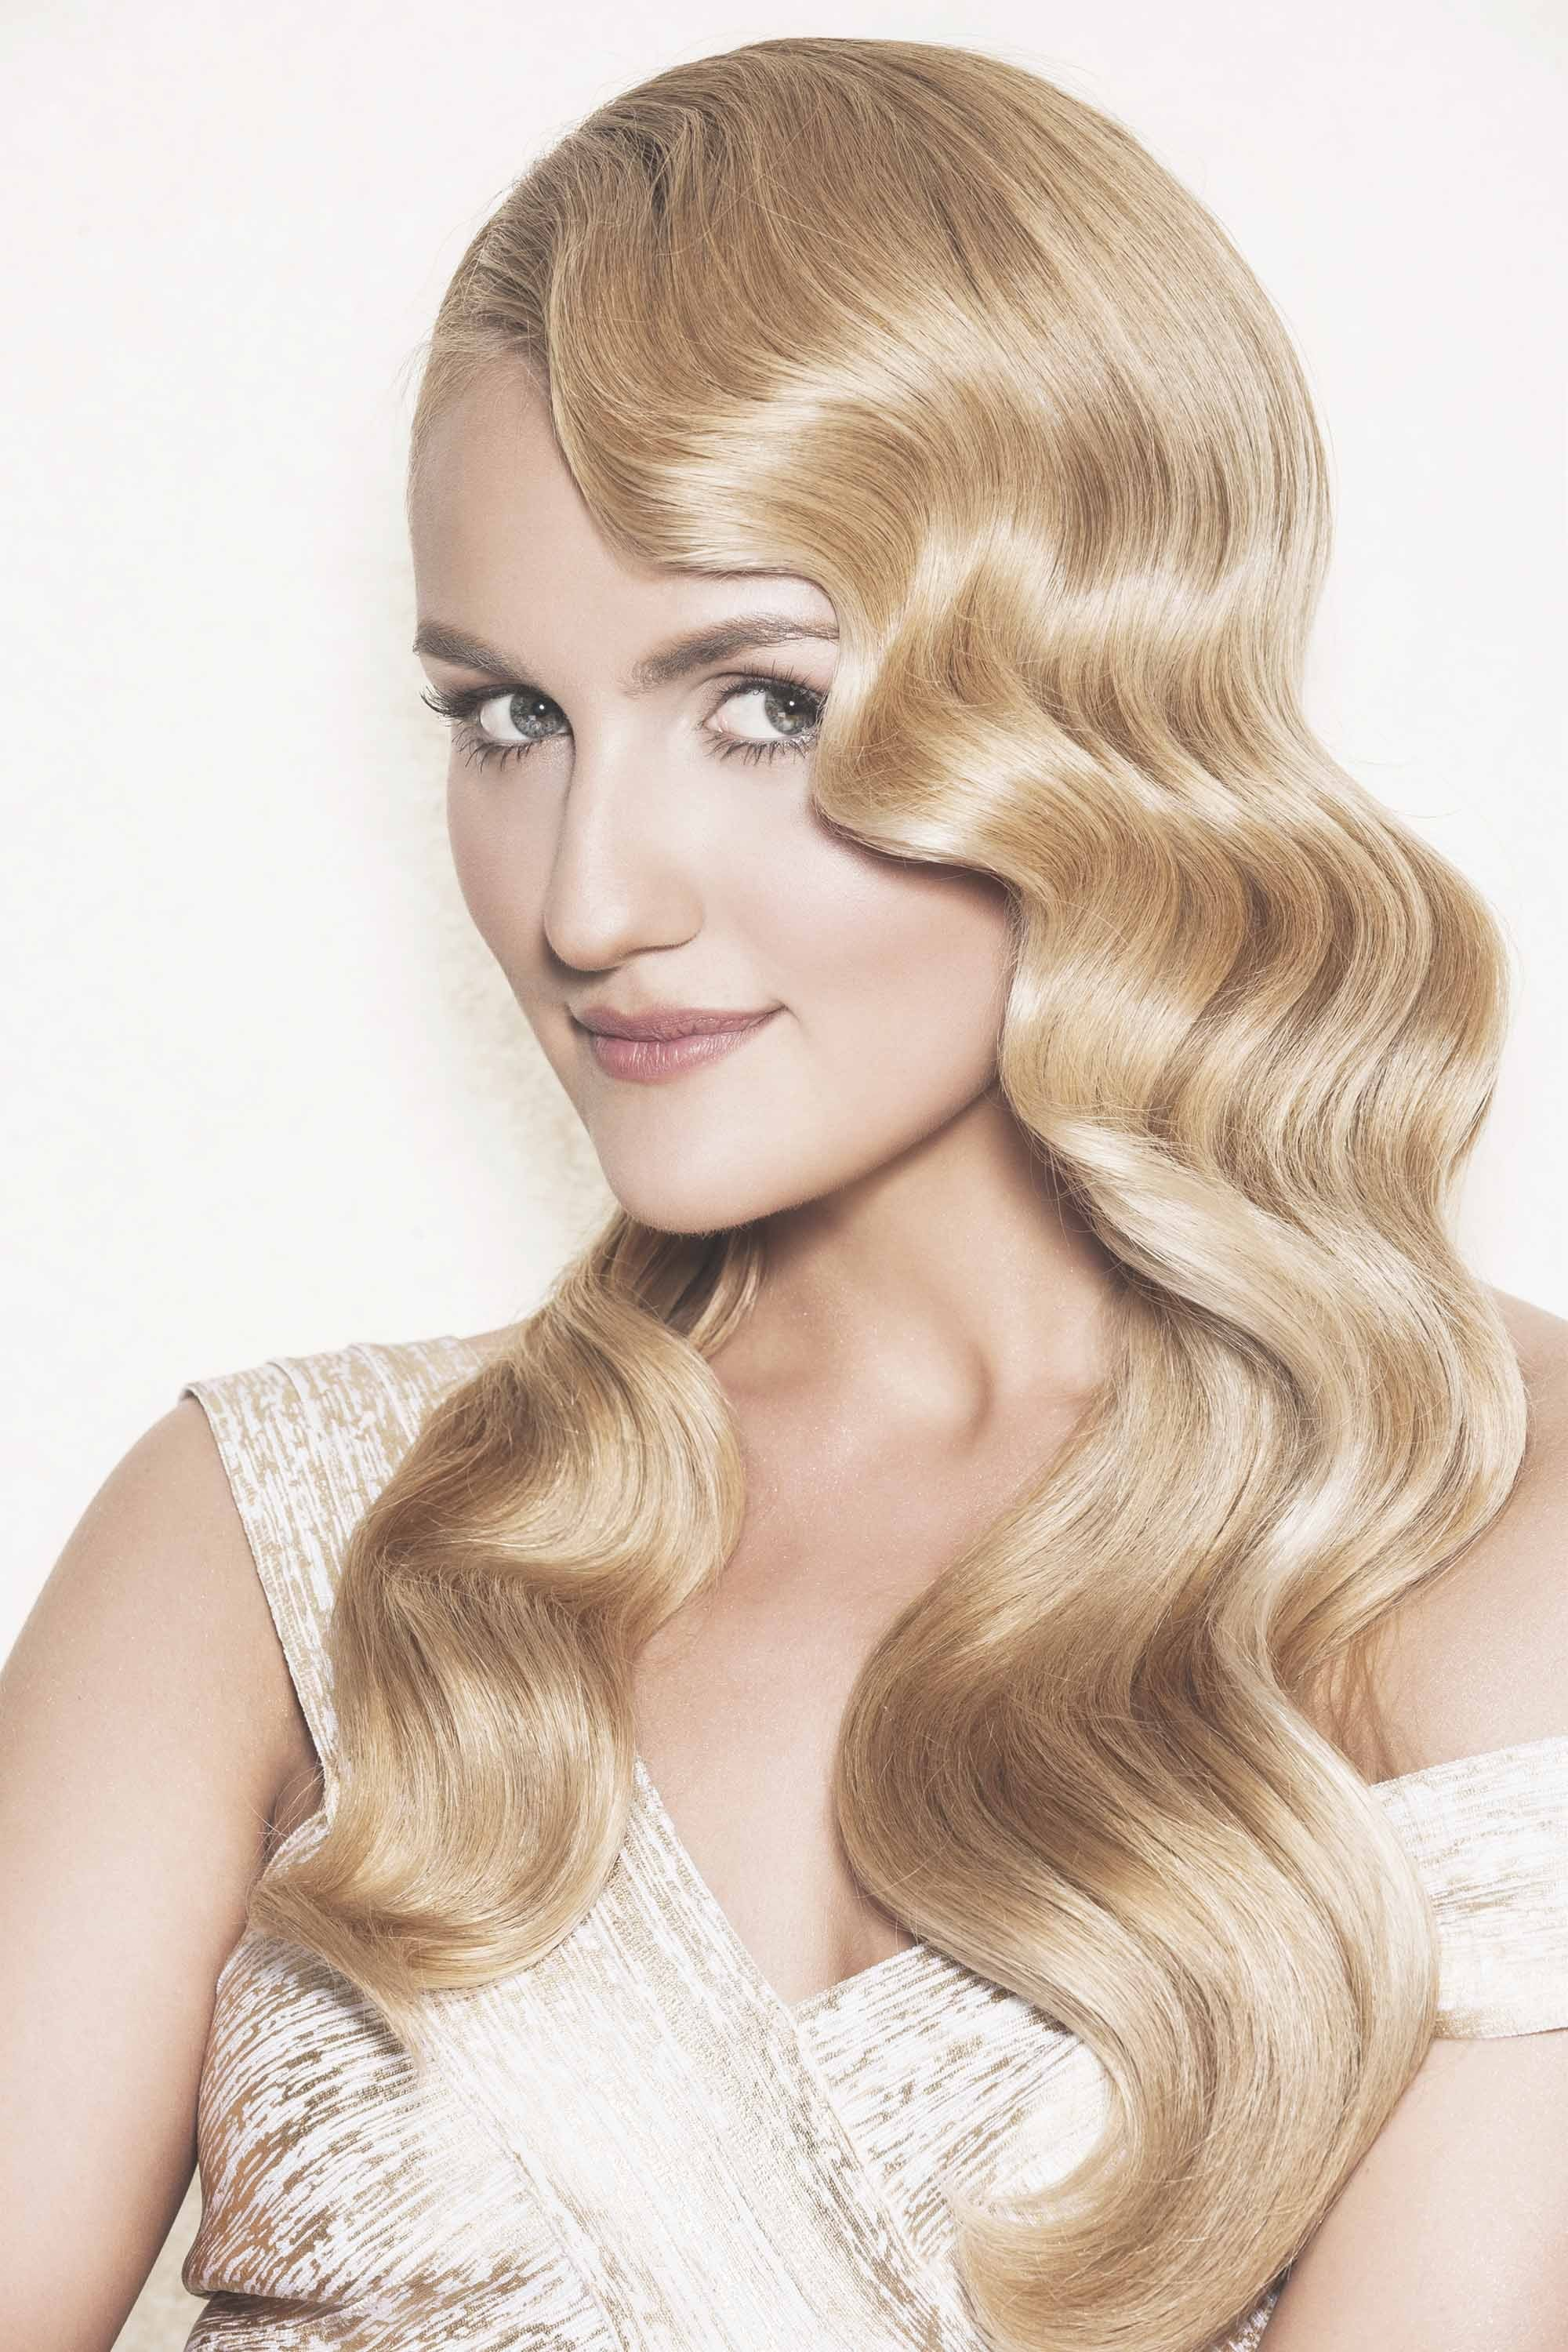 The Best 11 Great Gatsby Inspired Hair Ideas For Halloween And Beyond All Things Hair Uk Pictures